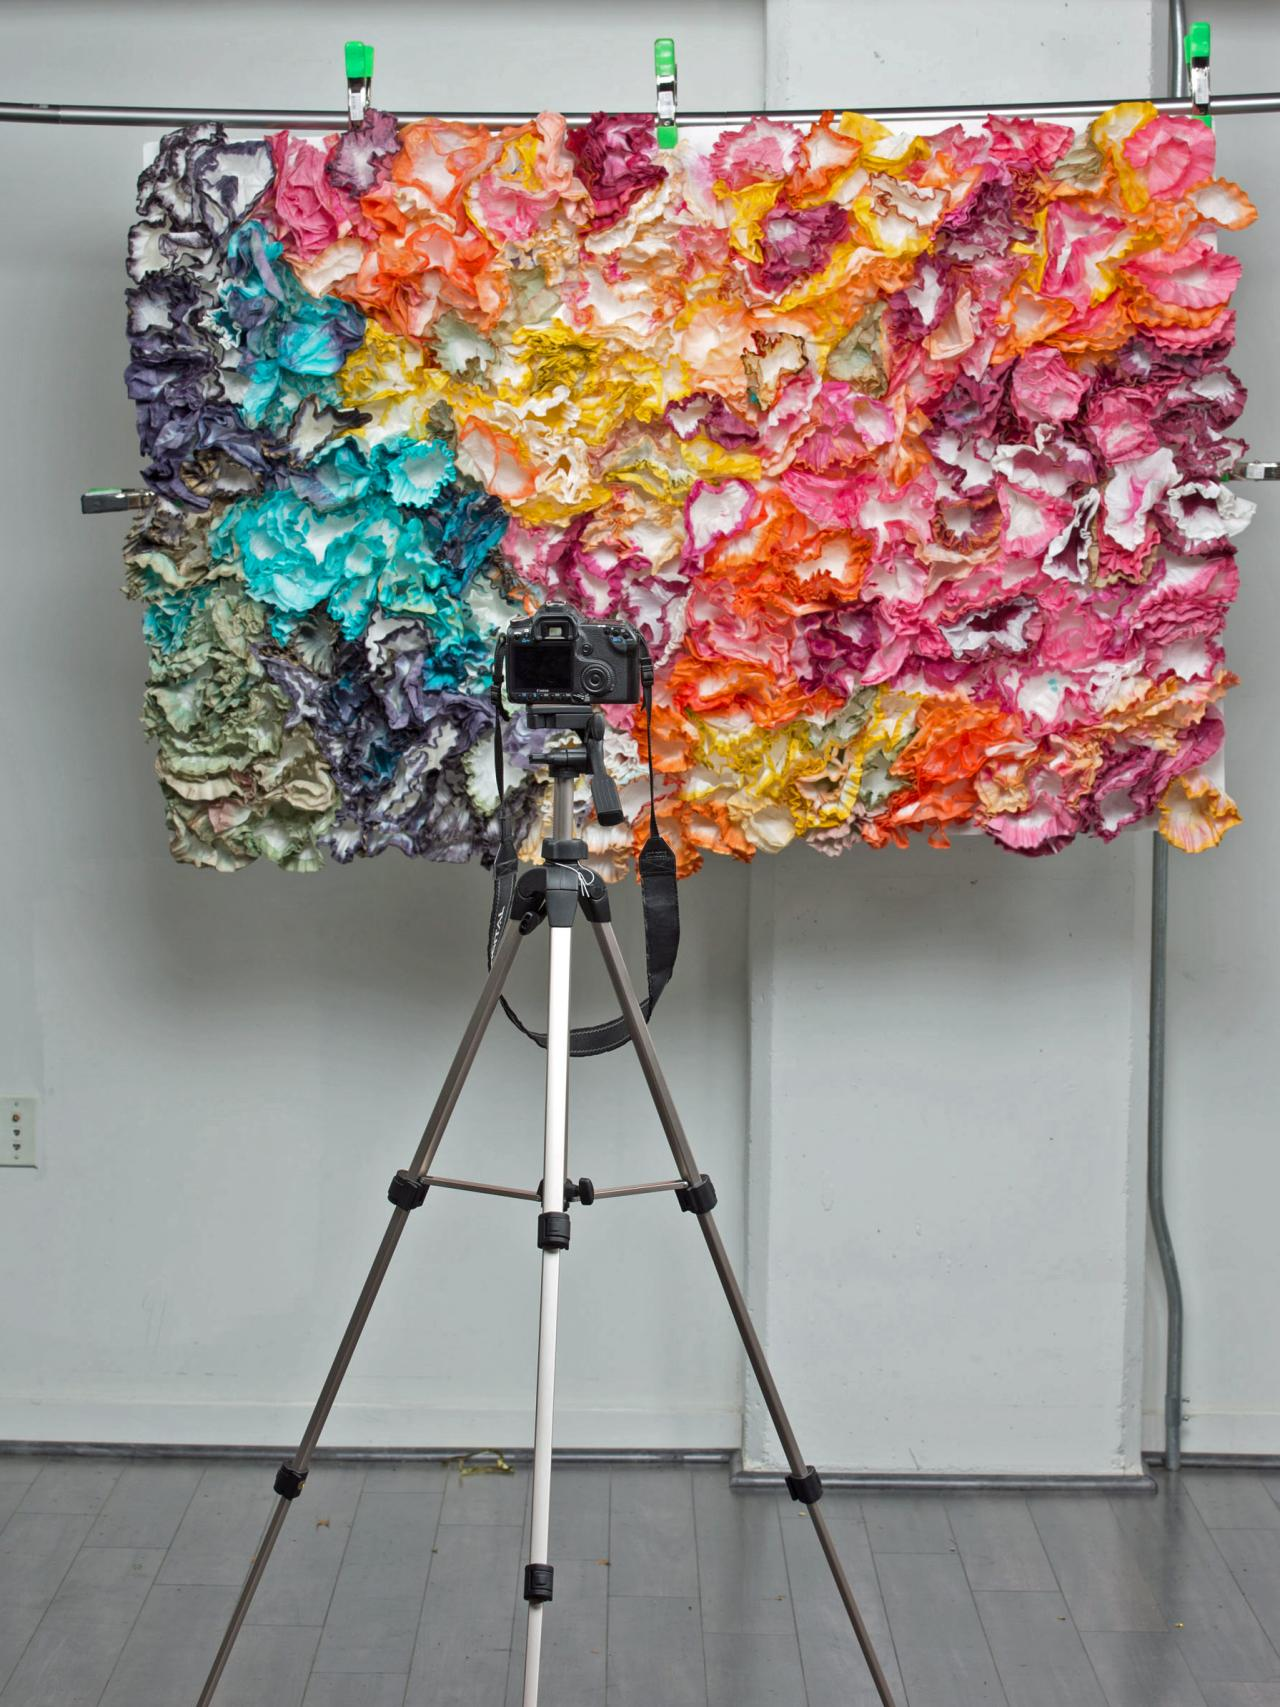 How To Set Up A Diy Photo Booth With Props And Backdrop Hgtv